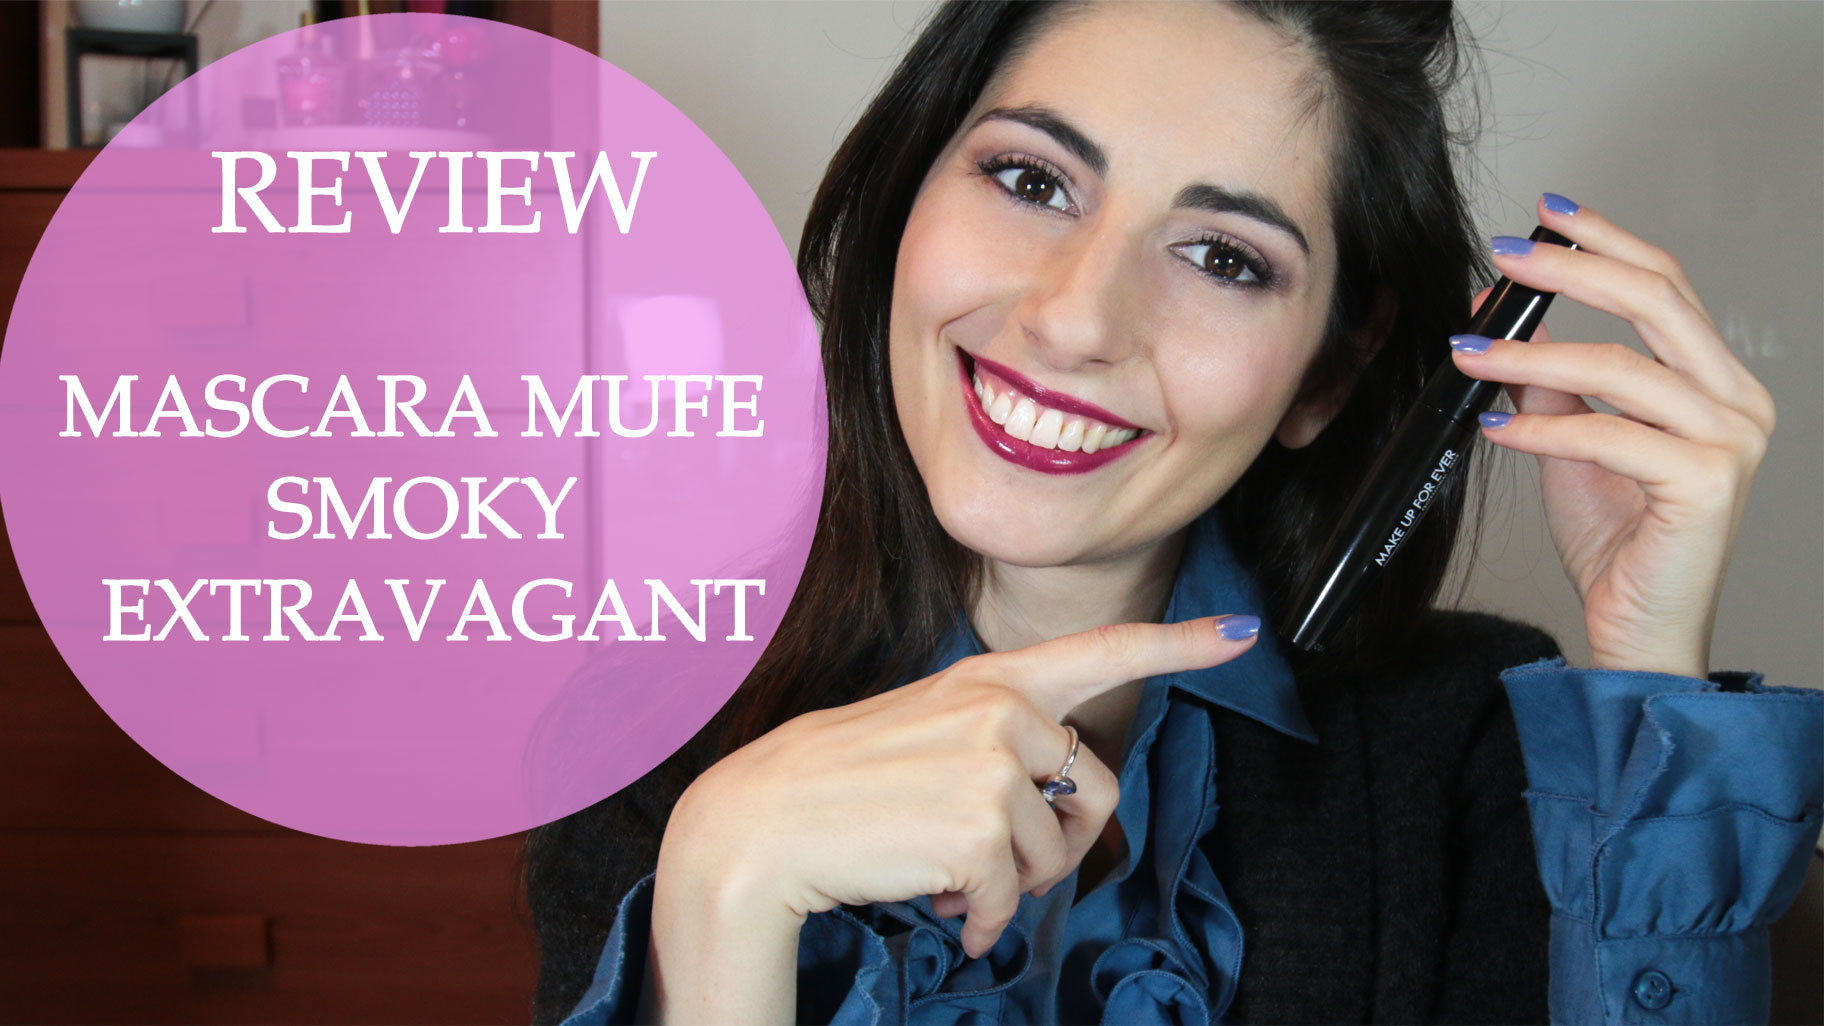 Review del mascara Smoky Extravagant di Make Up For Ever